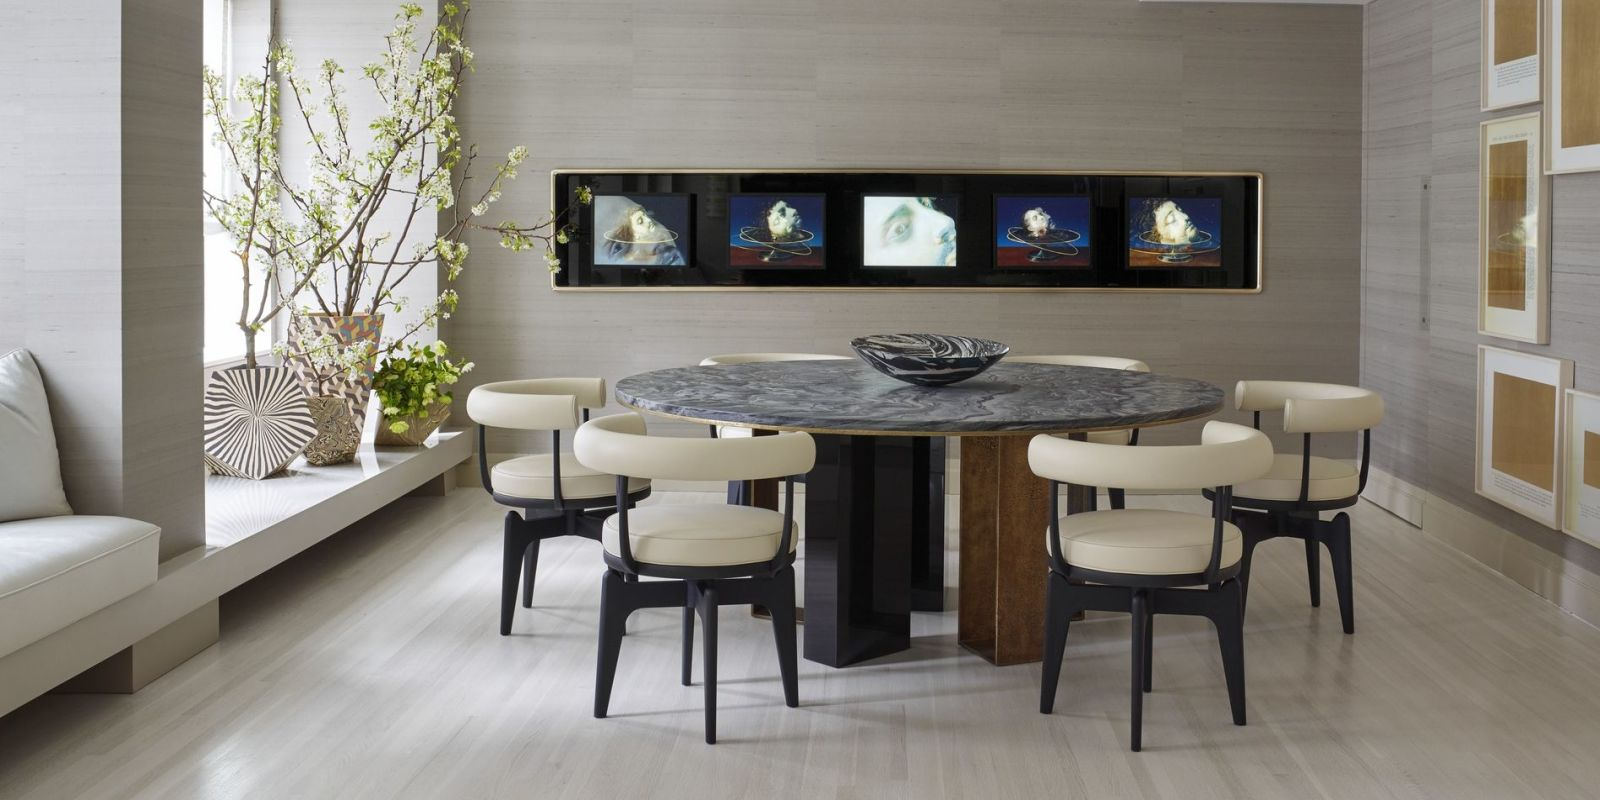 25 modern dining room decorating ideas contemporary for Dining room accessories